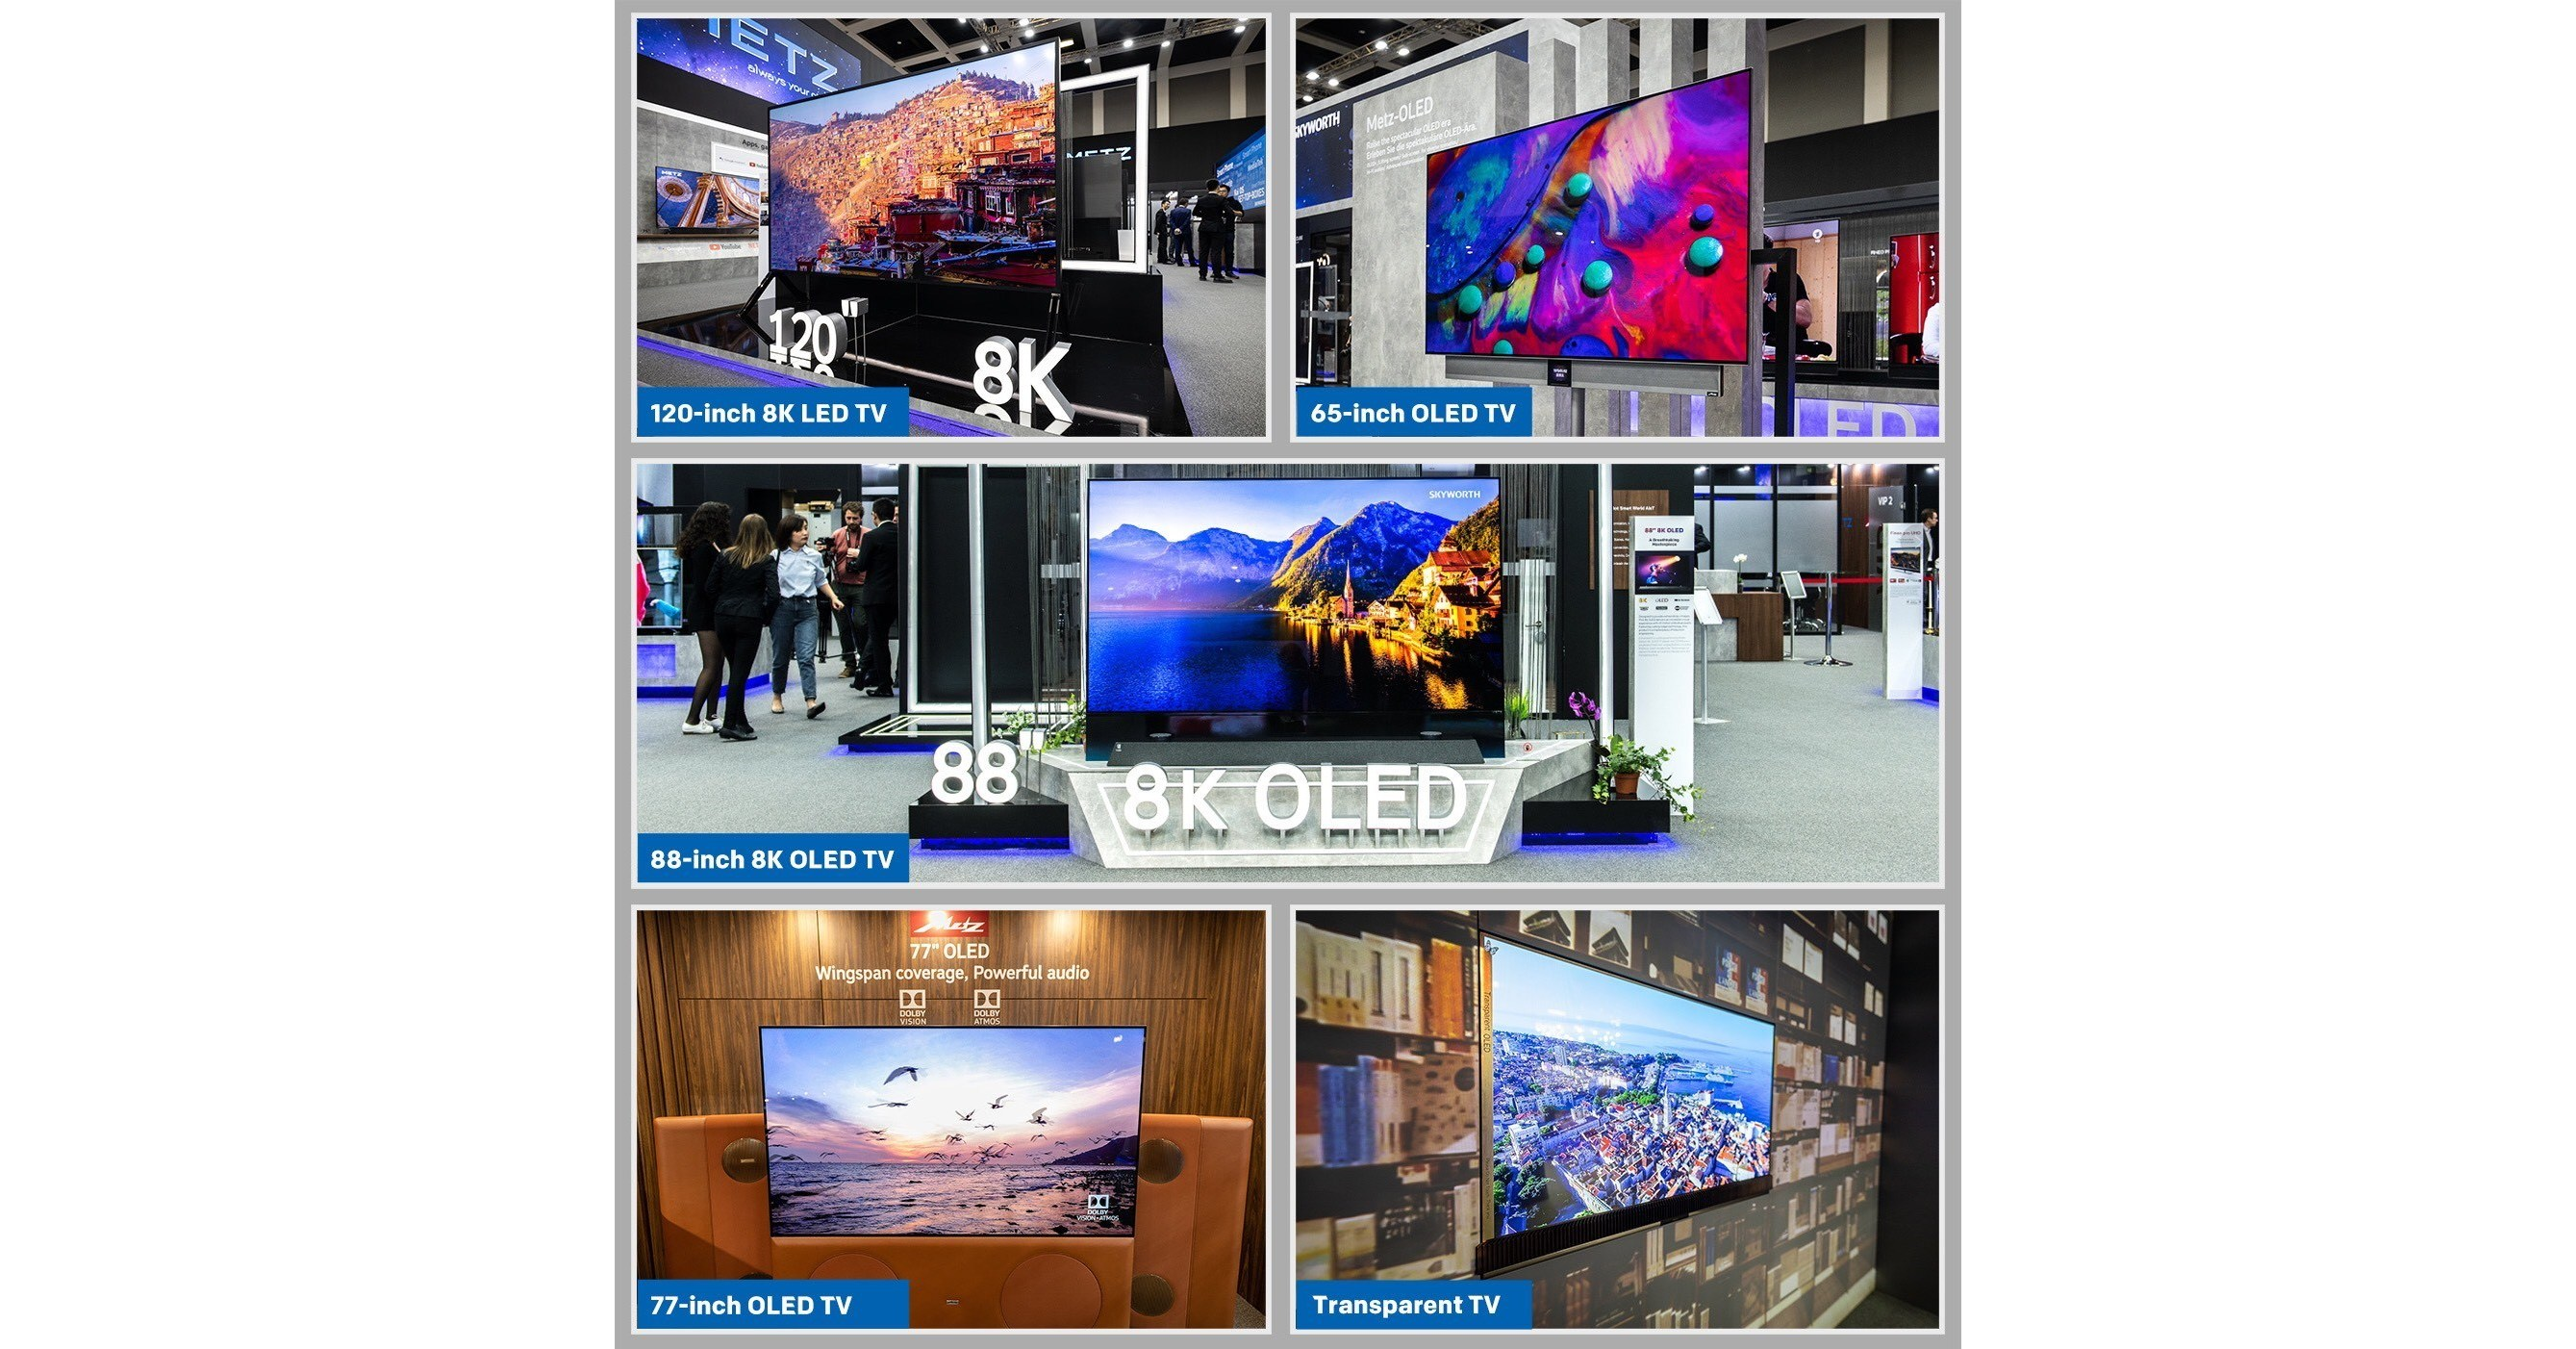 New Metz Concept TVs at IFA 2019: Define the Future of Smart